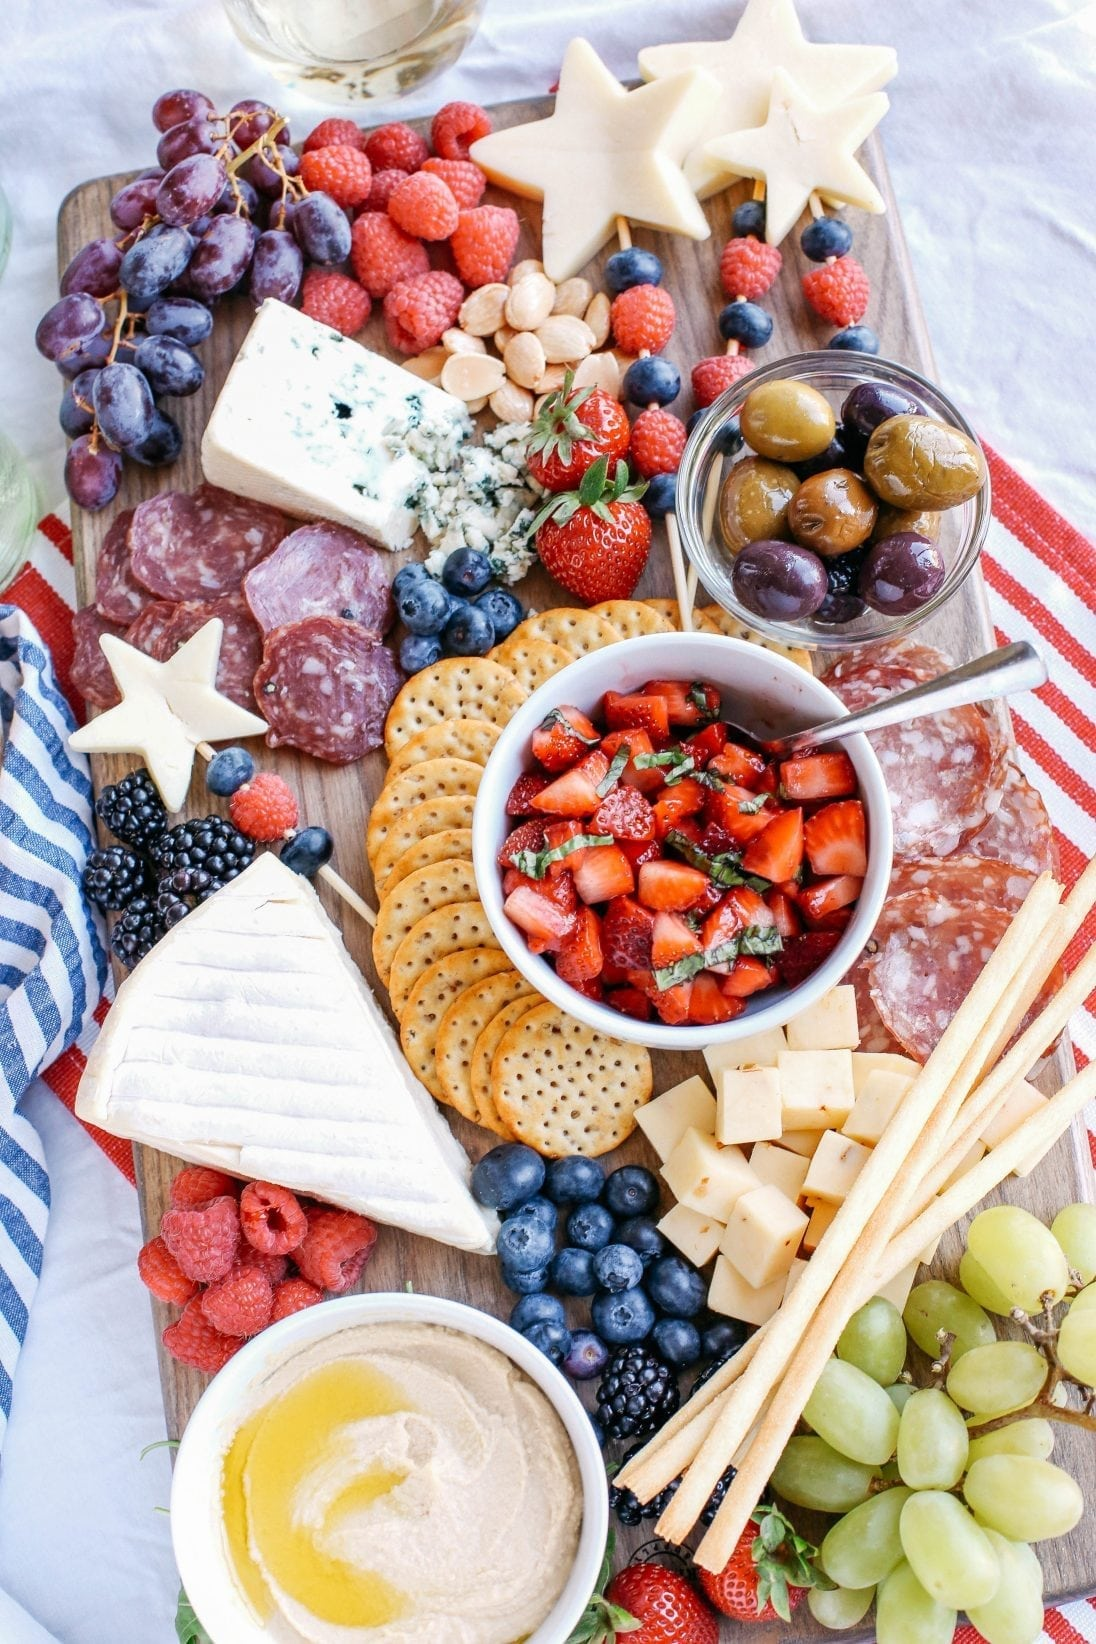 Red, White and Blue Patriotic Cheeseboard | 4th of July party ideas, 4th of July desserts and more from @cydconverse